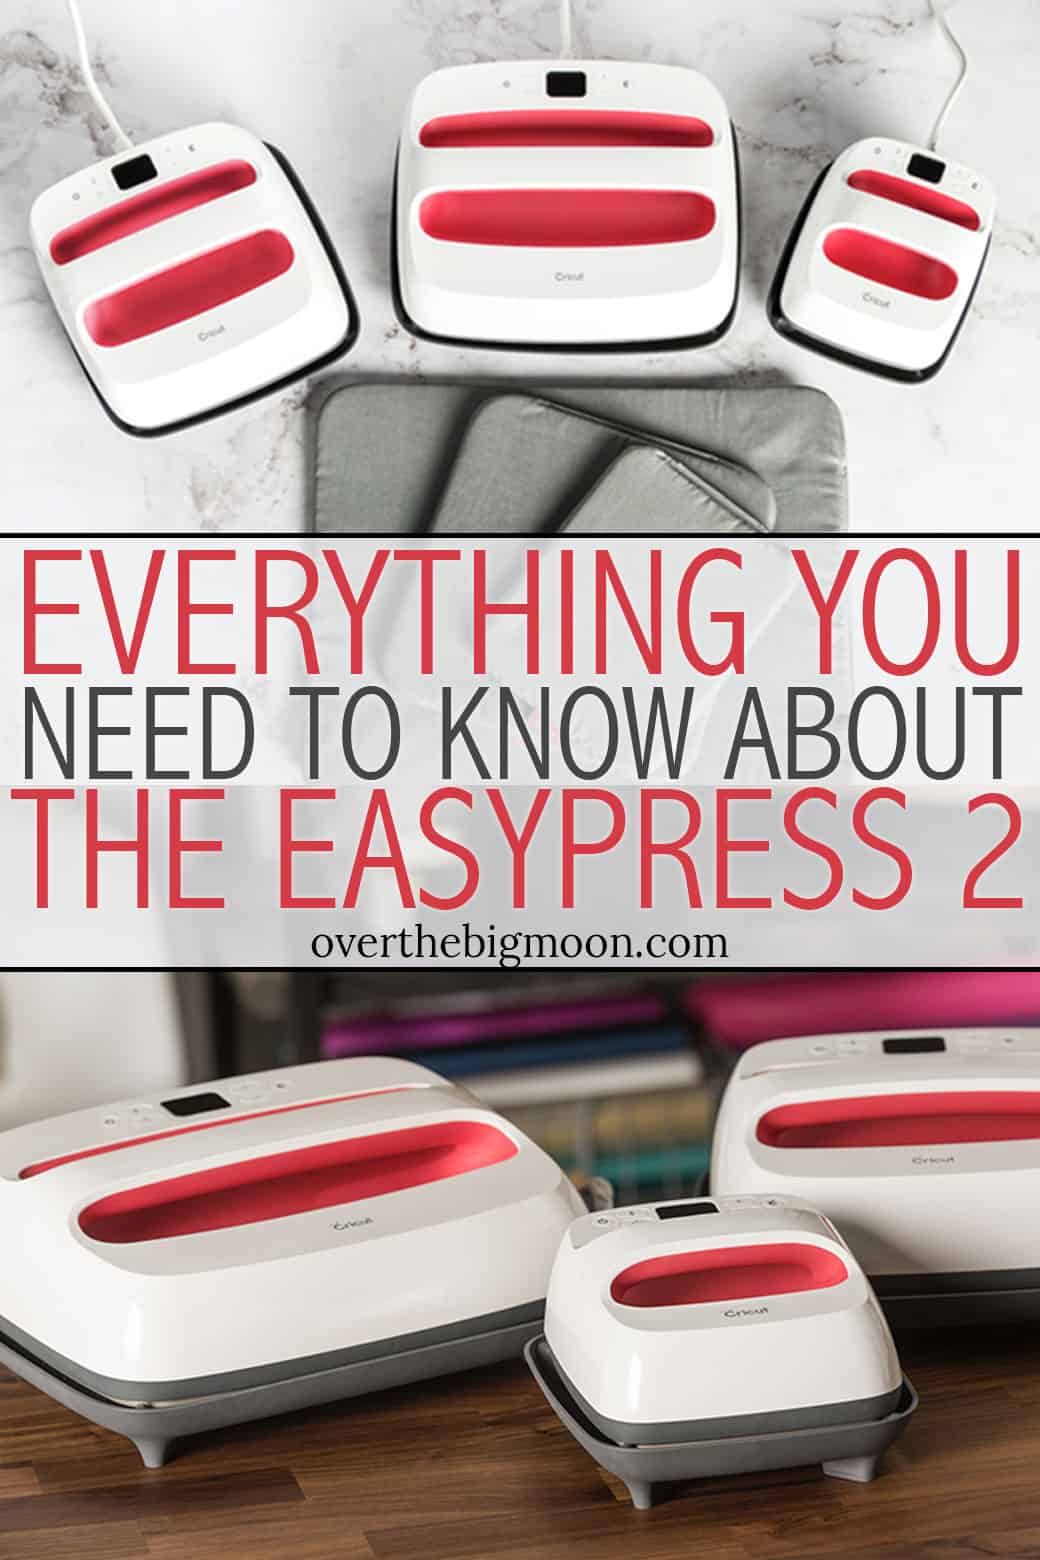 Come learn EVERYTHING you need to know about the Easypress 2! Do you want to buy one? What can it do? What are the differences between the original EasyPress and EasyPress 2? From overthebigmoon.com!